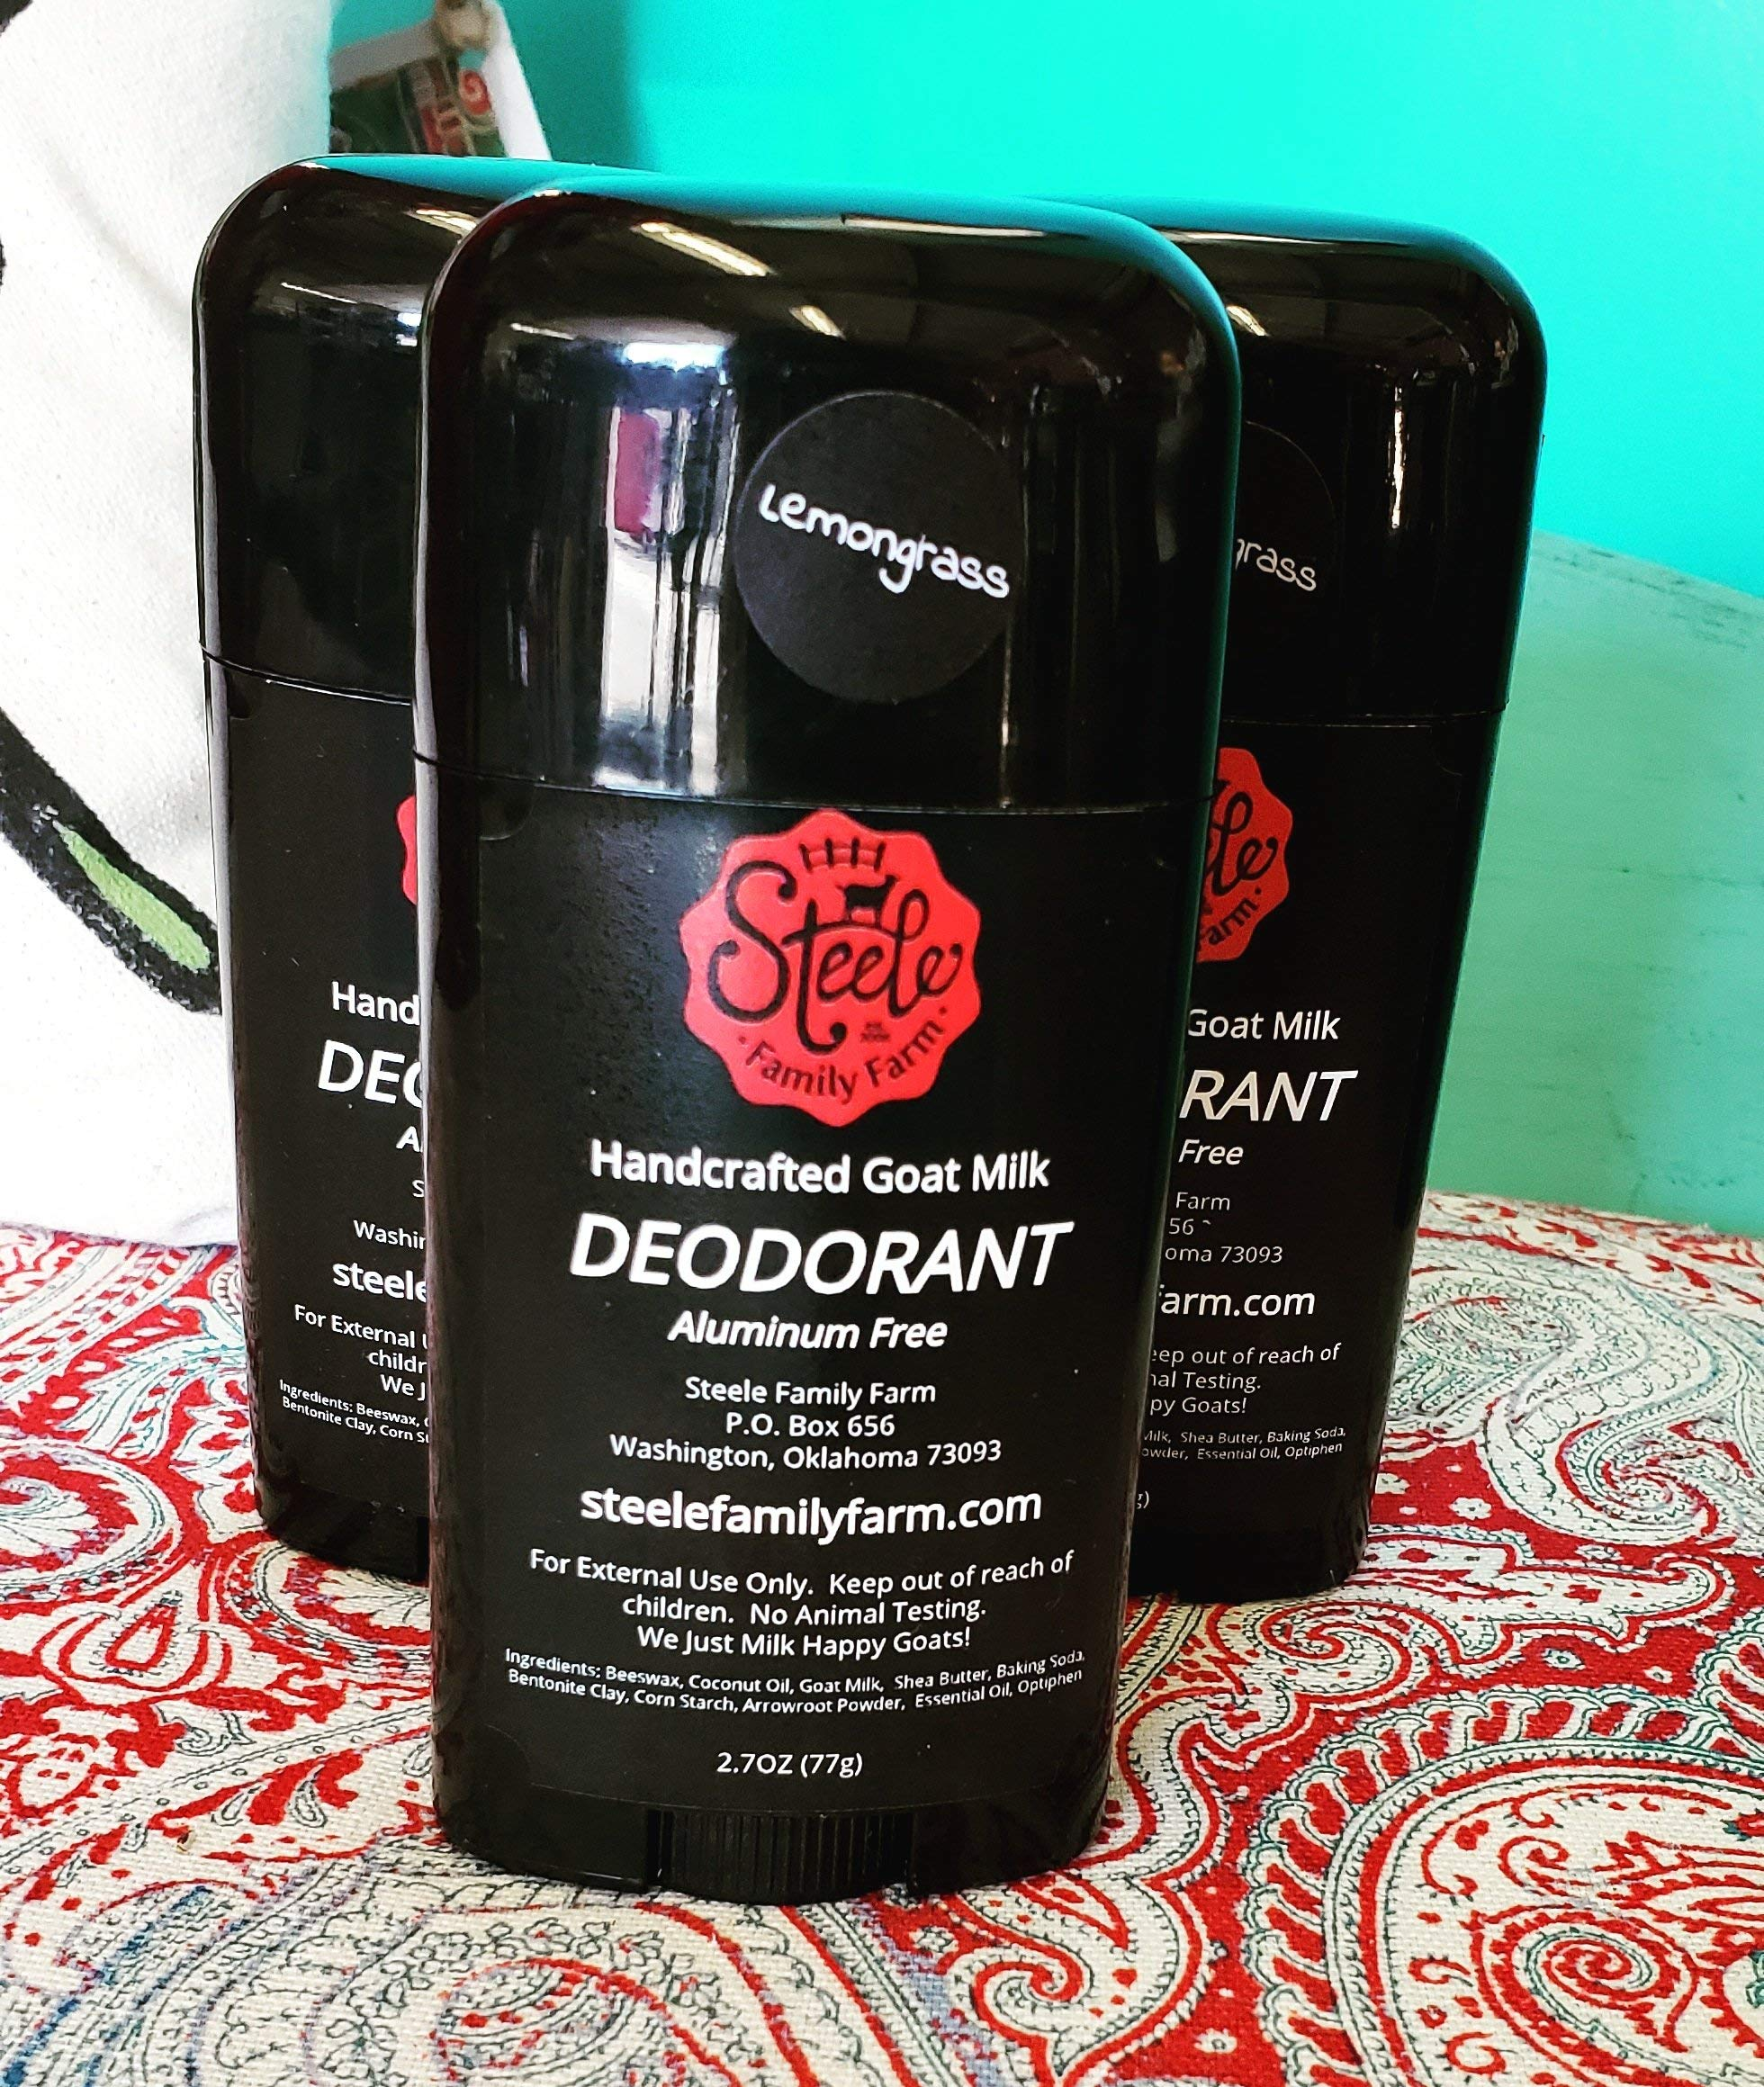 Handcrafted Goat Milk Deodorant by Steele Family Farm